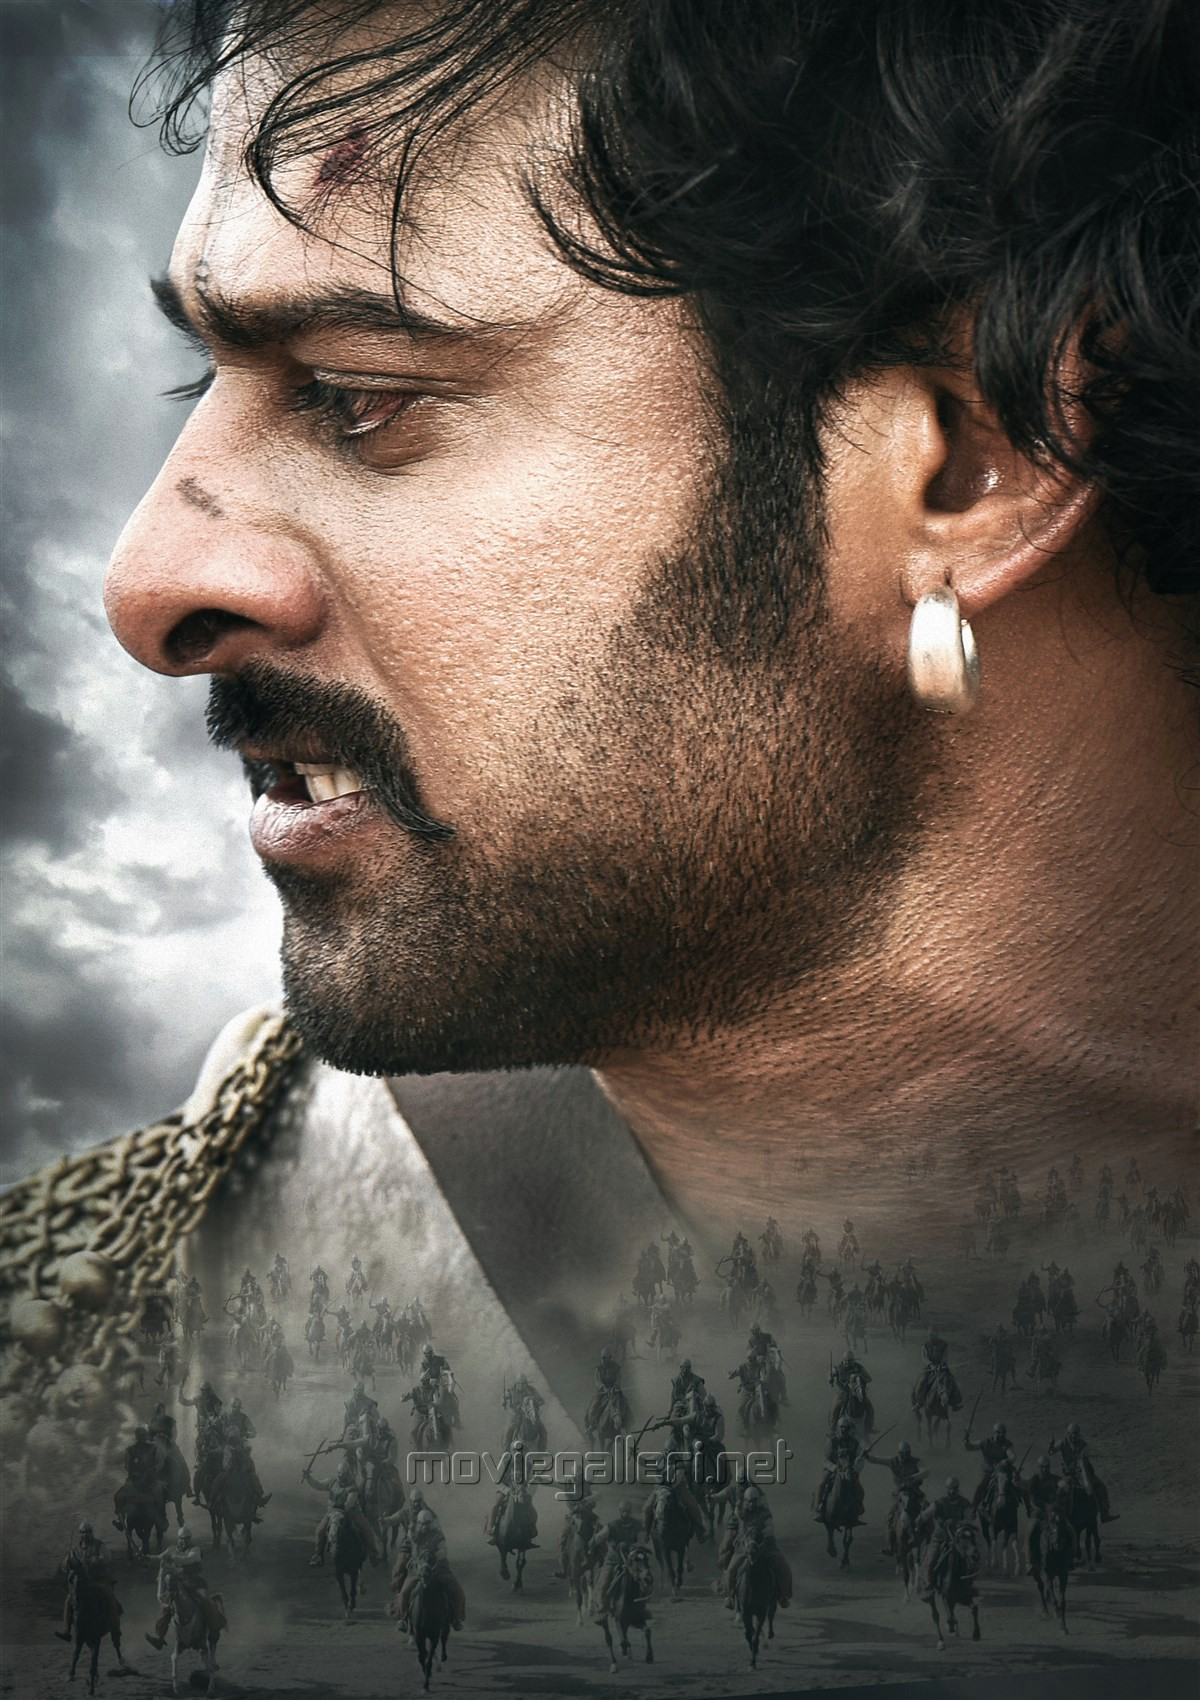 bahubali hd wallpaper images pics photo prabhas rana fight